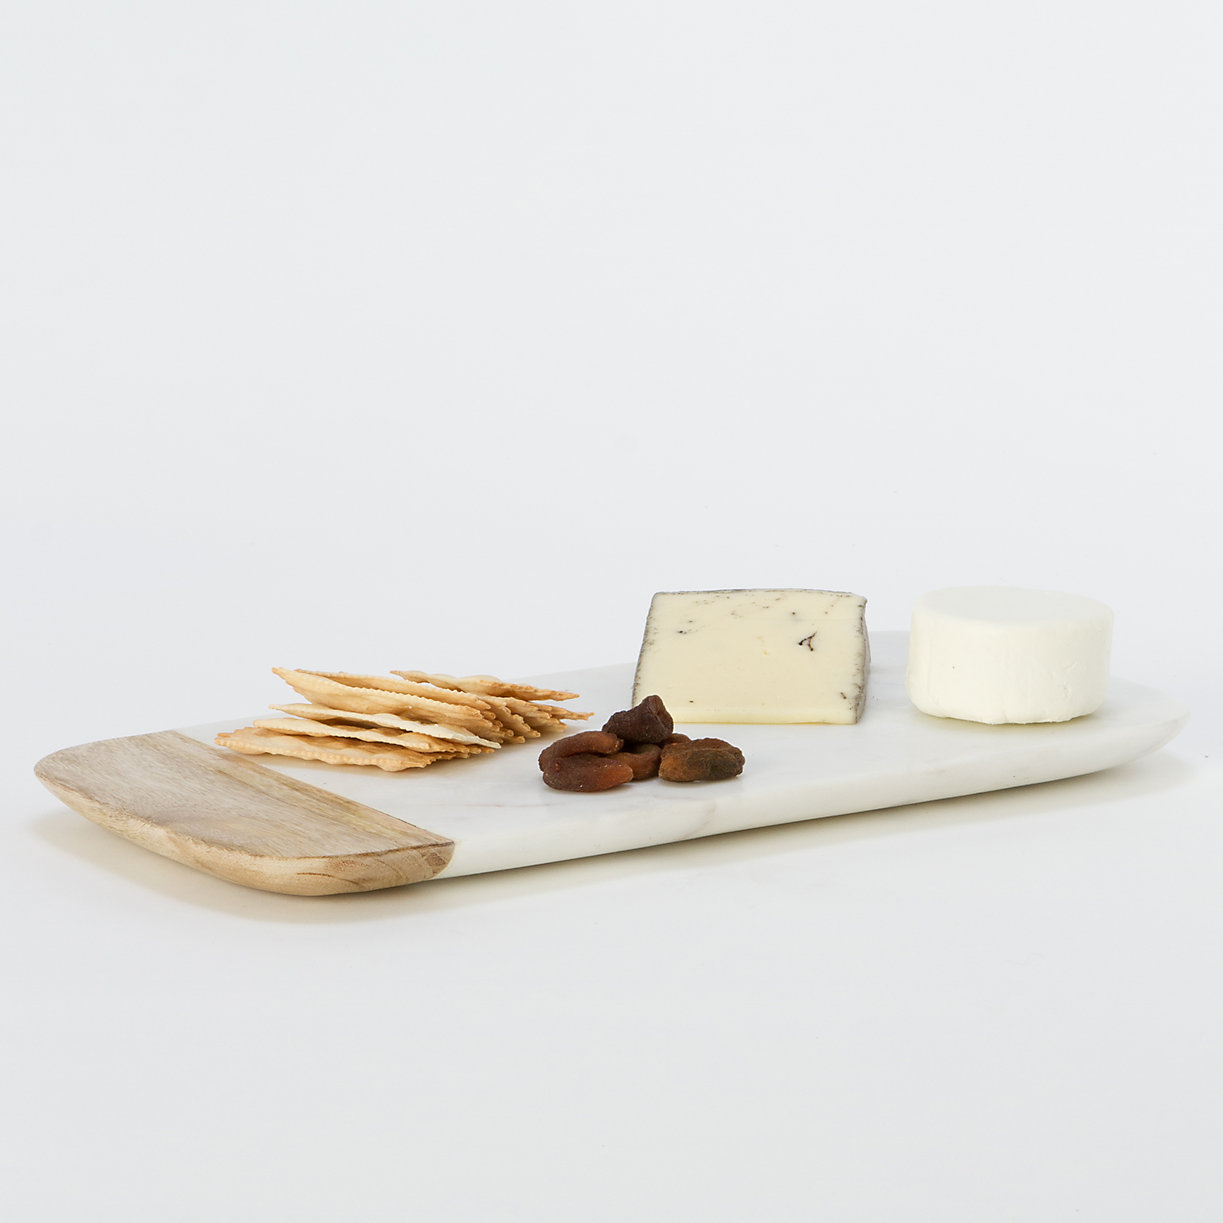 terrain Marble & Wood Cheese Board | Pinterest Picks - Mother's Day Gift Ideas